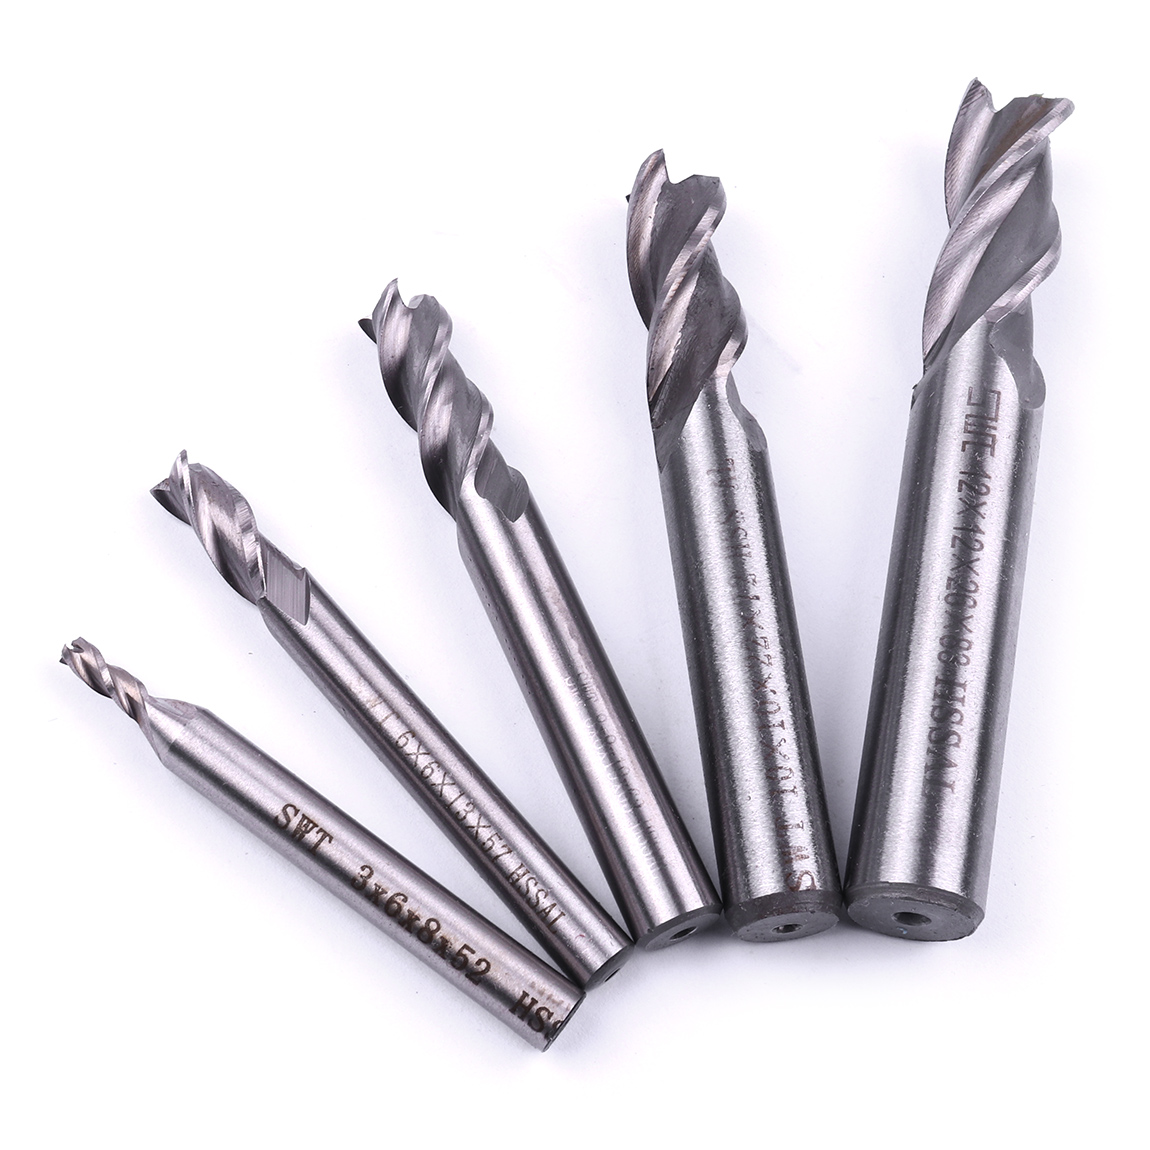 HSS 3 FLUTE EDGE CARBIDE SLOT DRILL BIT END MILL MILLING CUTTER 3mm 6mm 8mm 10mm 12mm